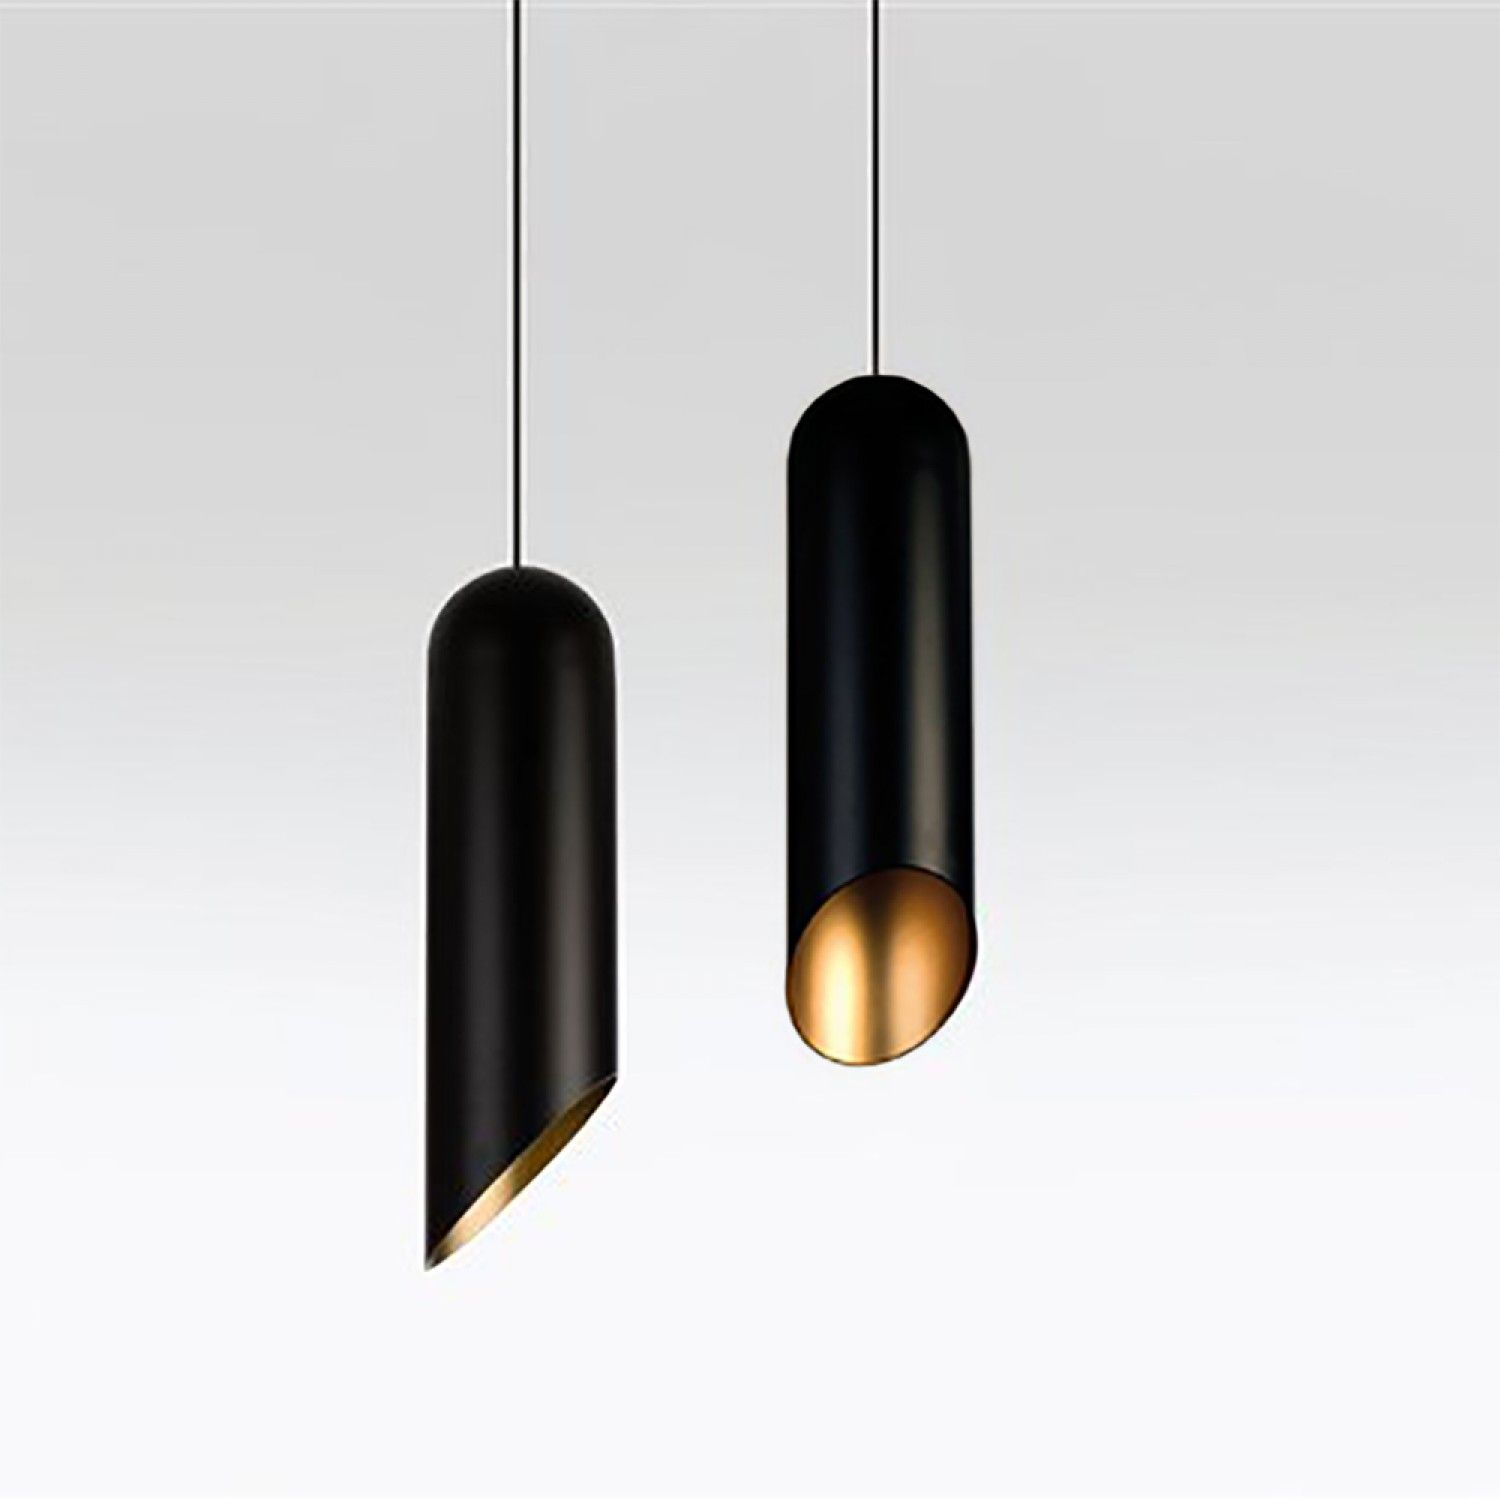 Tom Dixon  Pipe Light - #Mydesignagenda #Designevents #Maisonobjet